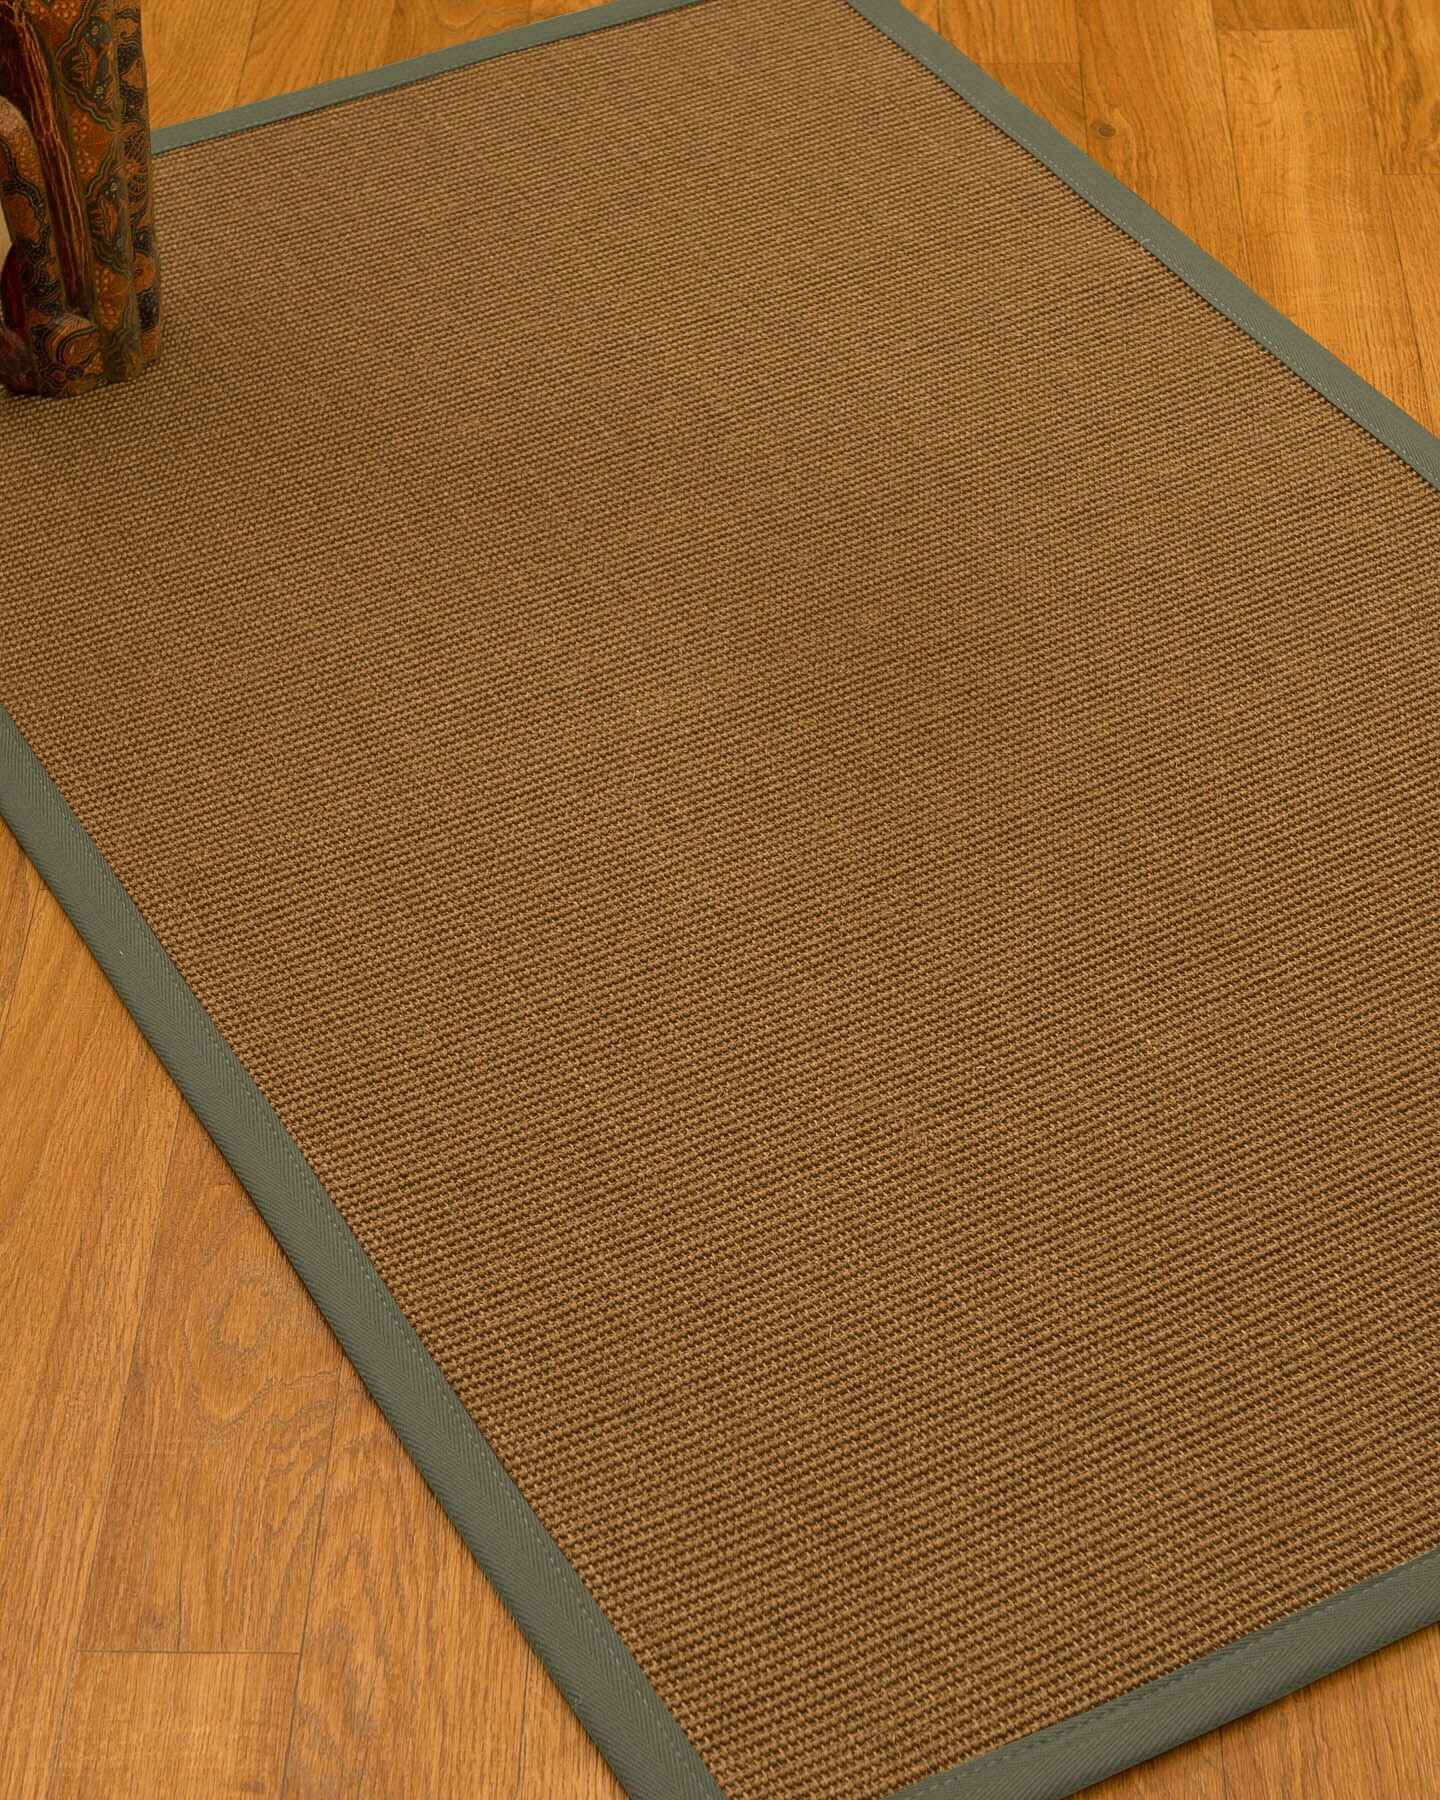 Huntwood Border Hand-Woven Brown/Slate Area Rug Rug Size: Rectangle 9' x 12', Rug Pad Included: Yes